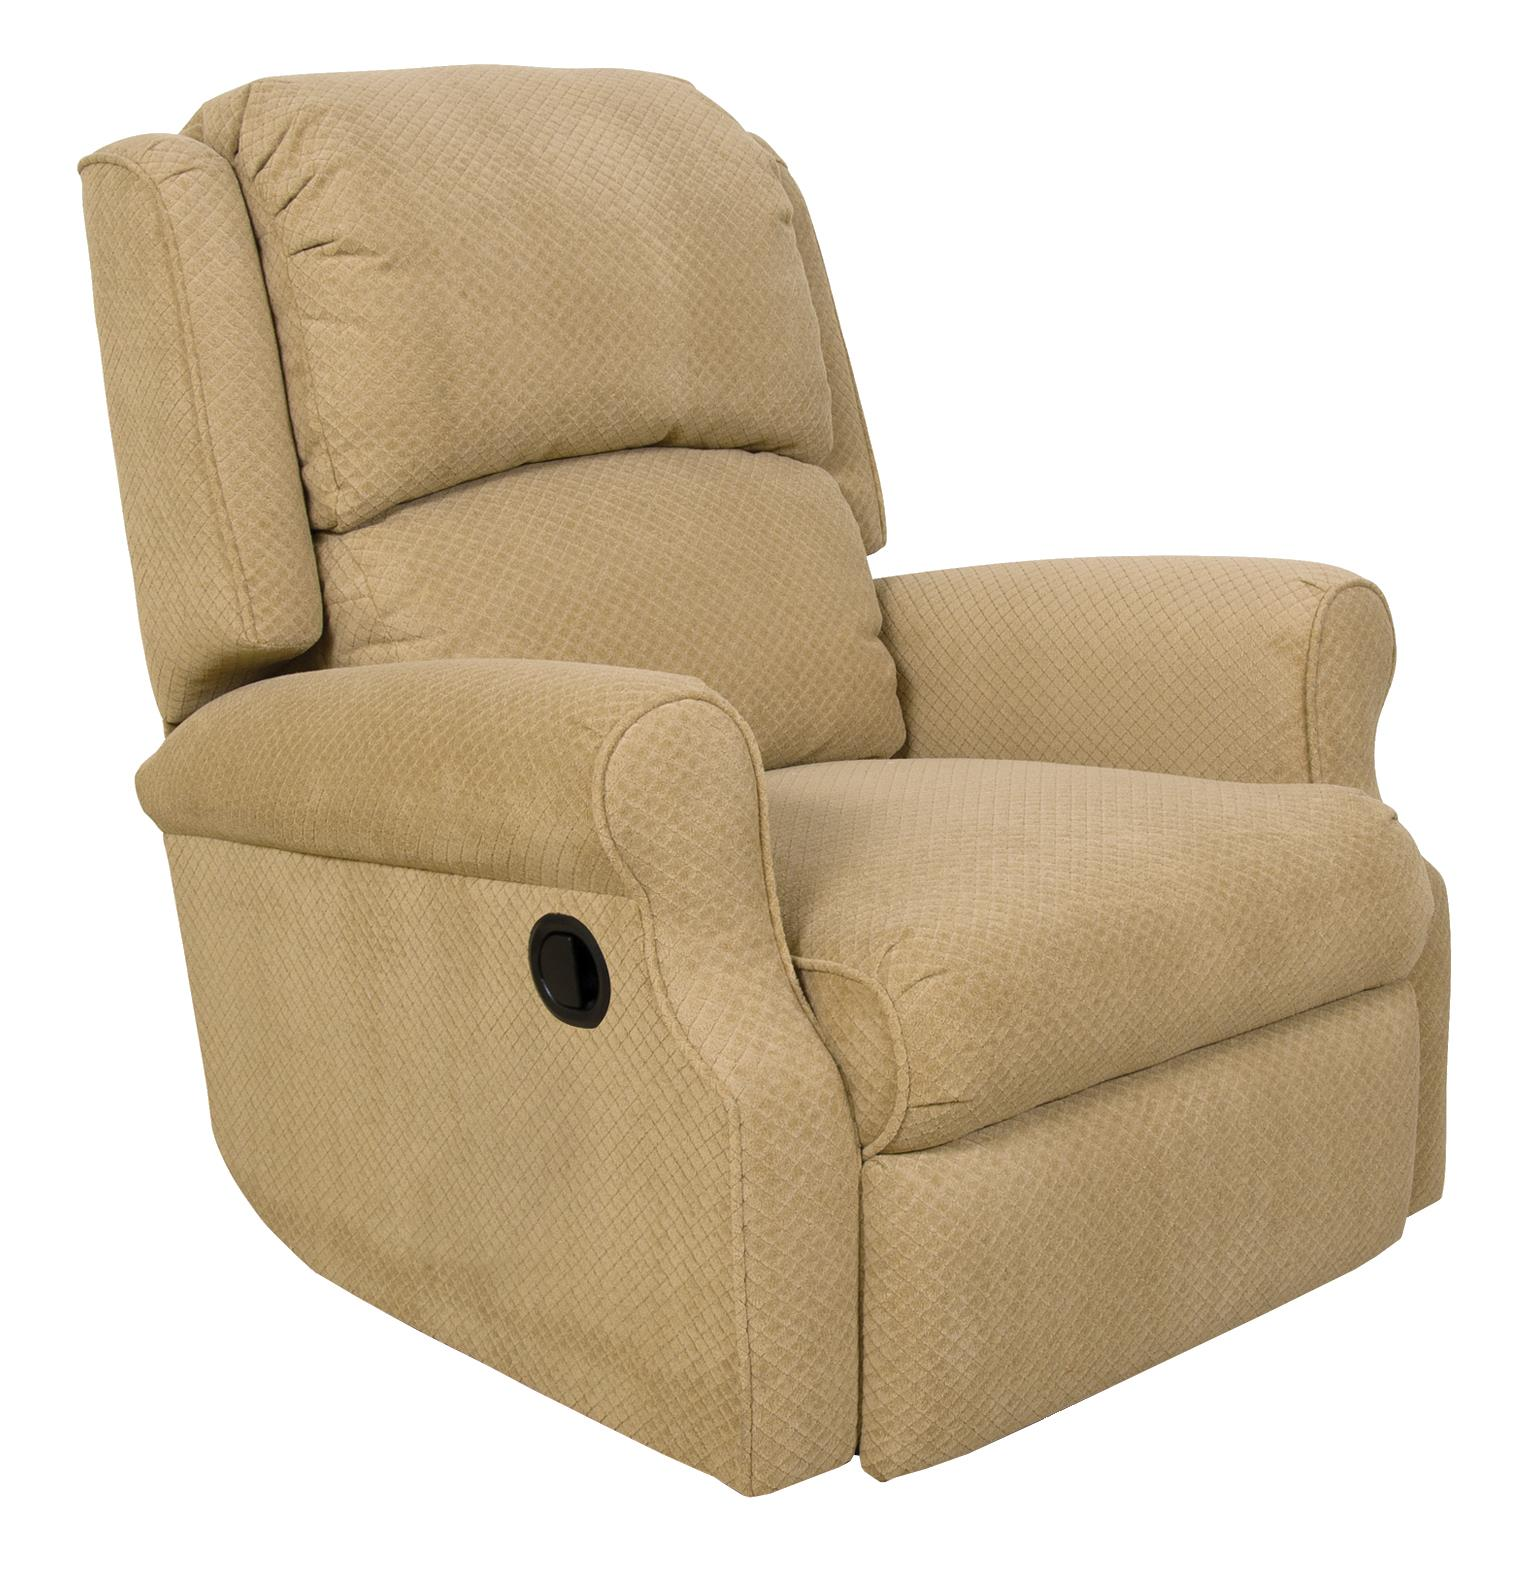 England Marybeth Rocker Recliner - Item Number: 210-52